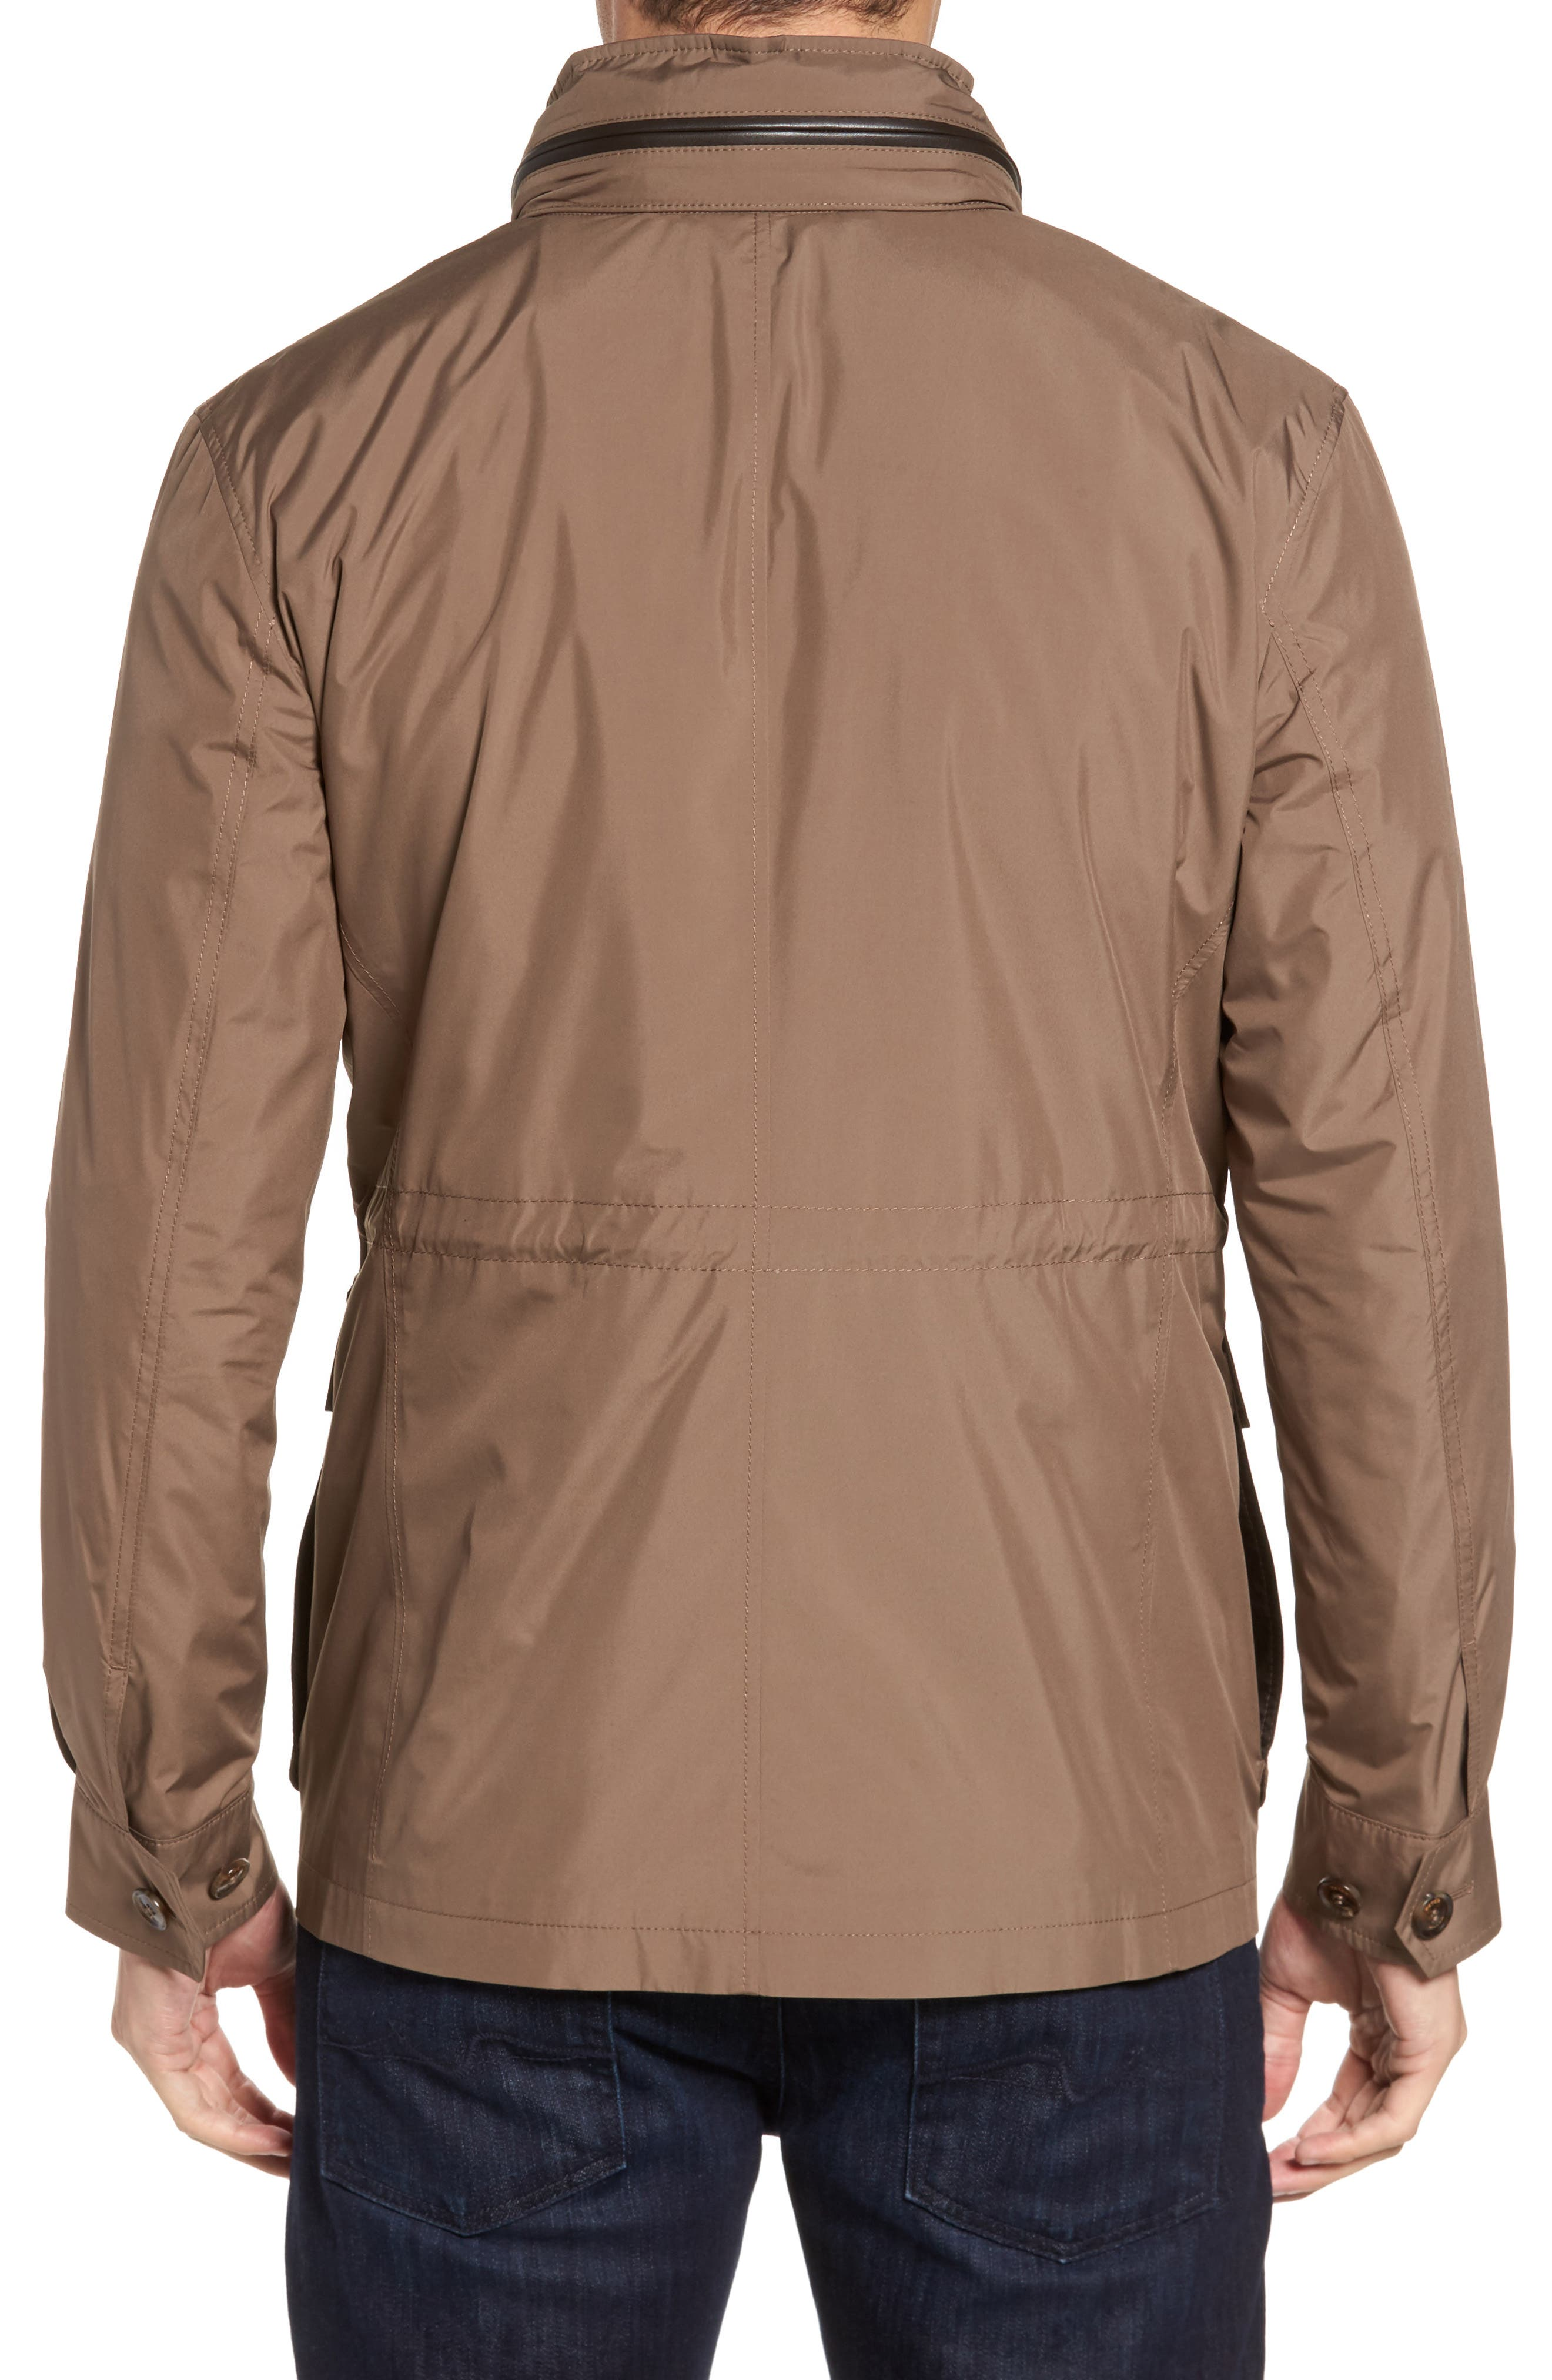 All Weather Discovery Jacket,                             Alternate thumbnail 2, color,                             240